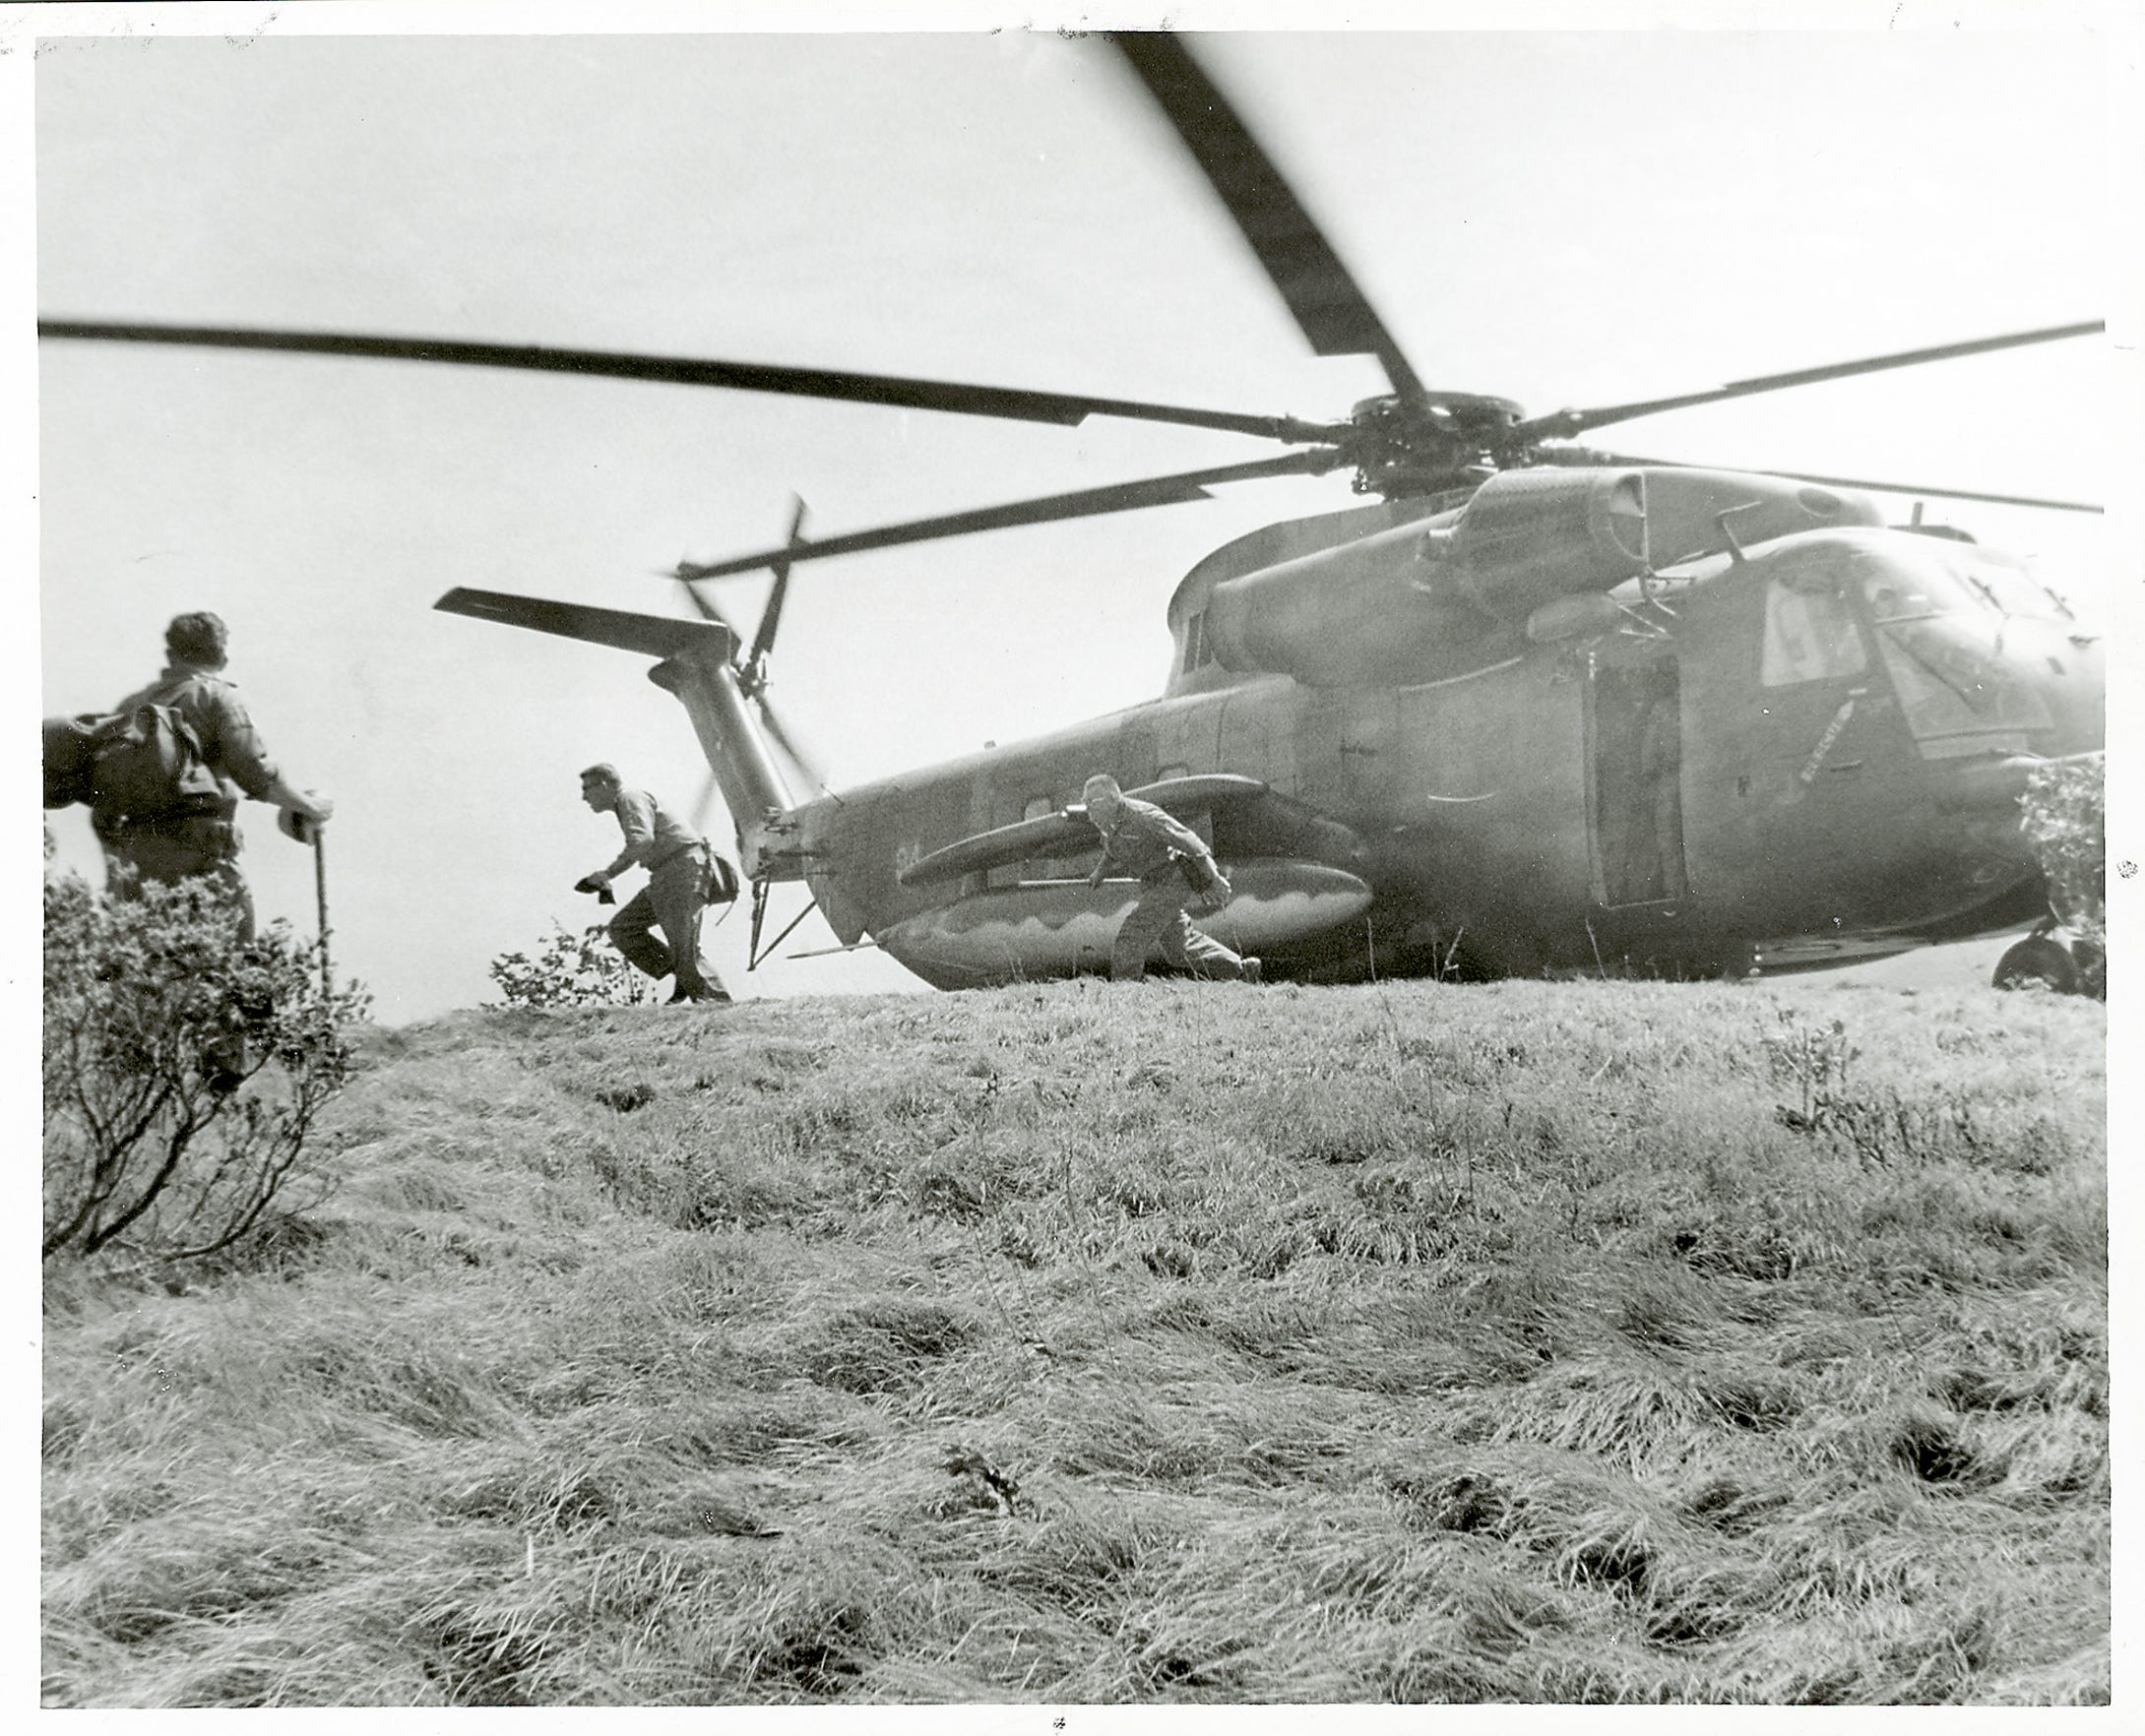 A Jolly Green Giant helicopter lands at Spence Field during the search for Dennis Martin, 6, on June 19, 1969, in the Great Smoky Mountains National Park.